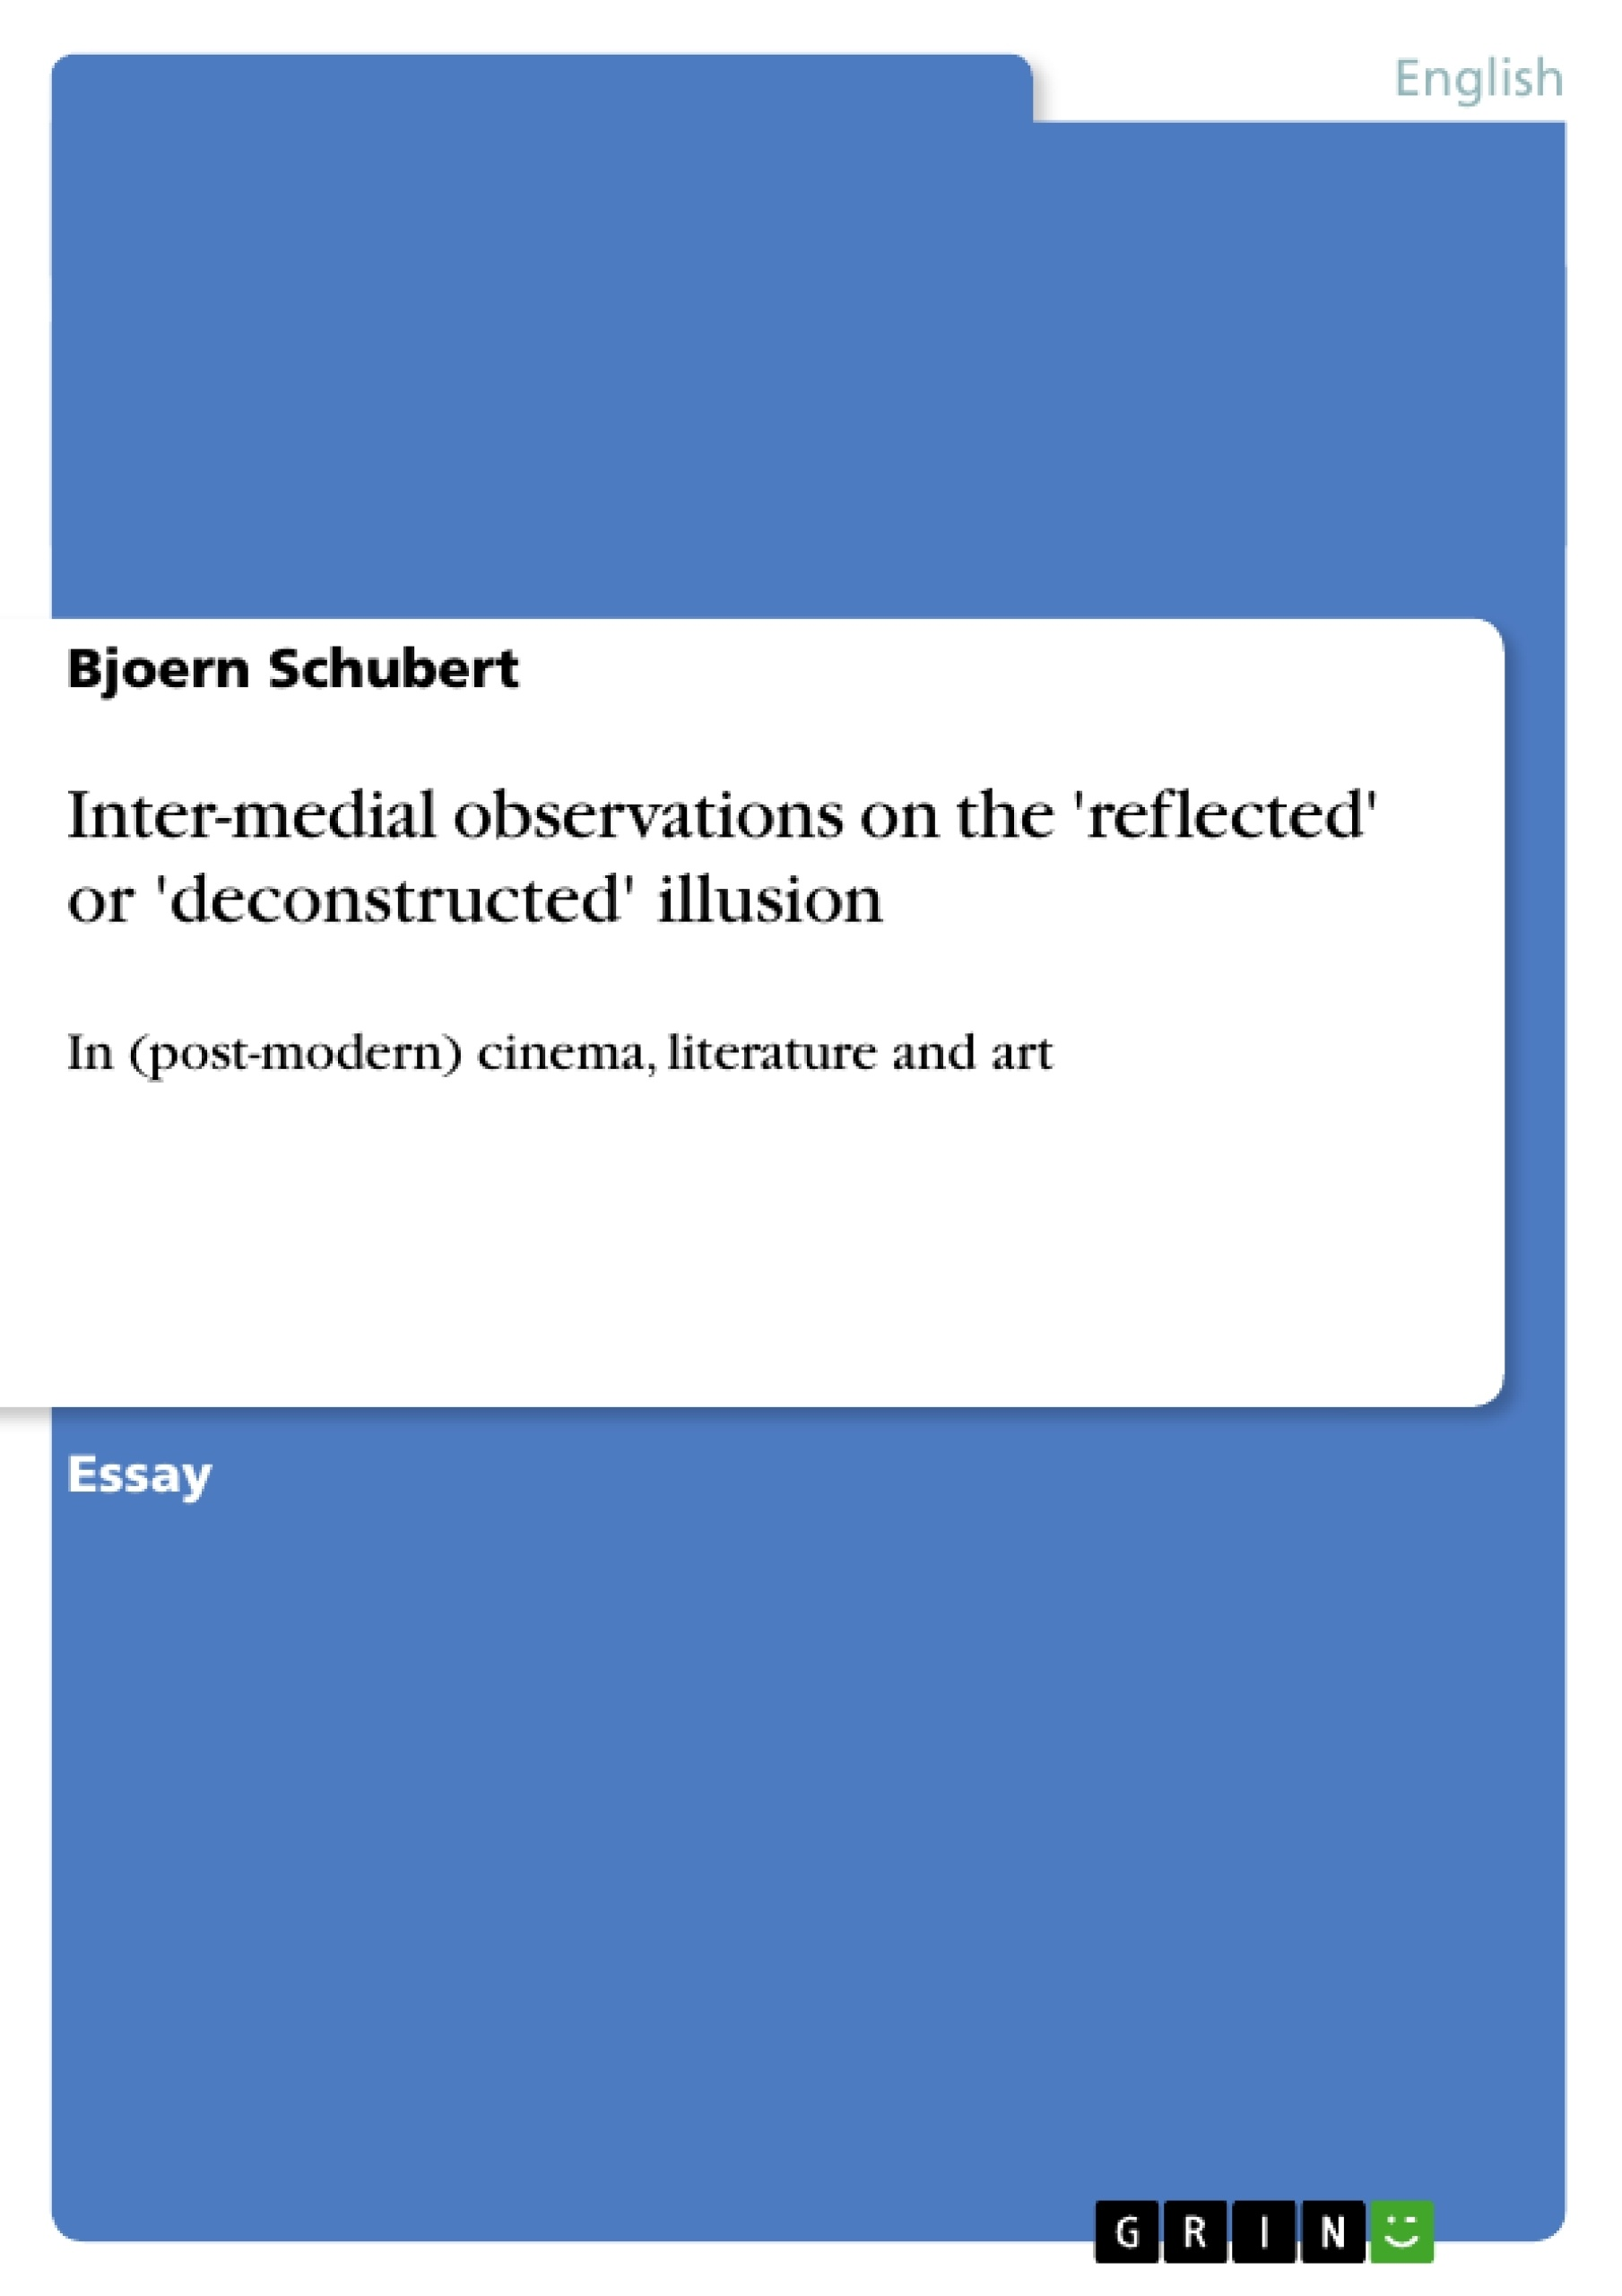 Title: Inter-medial observations on the 'reflected' or 'deconstructed' illusion